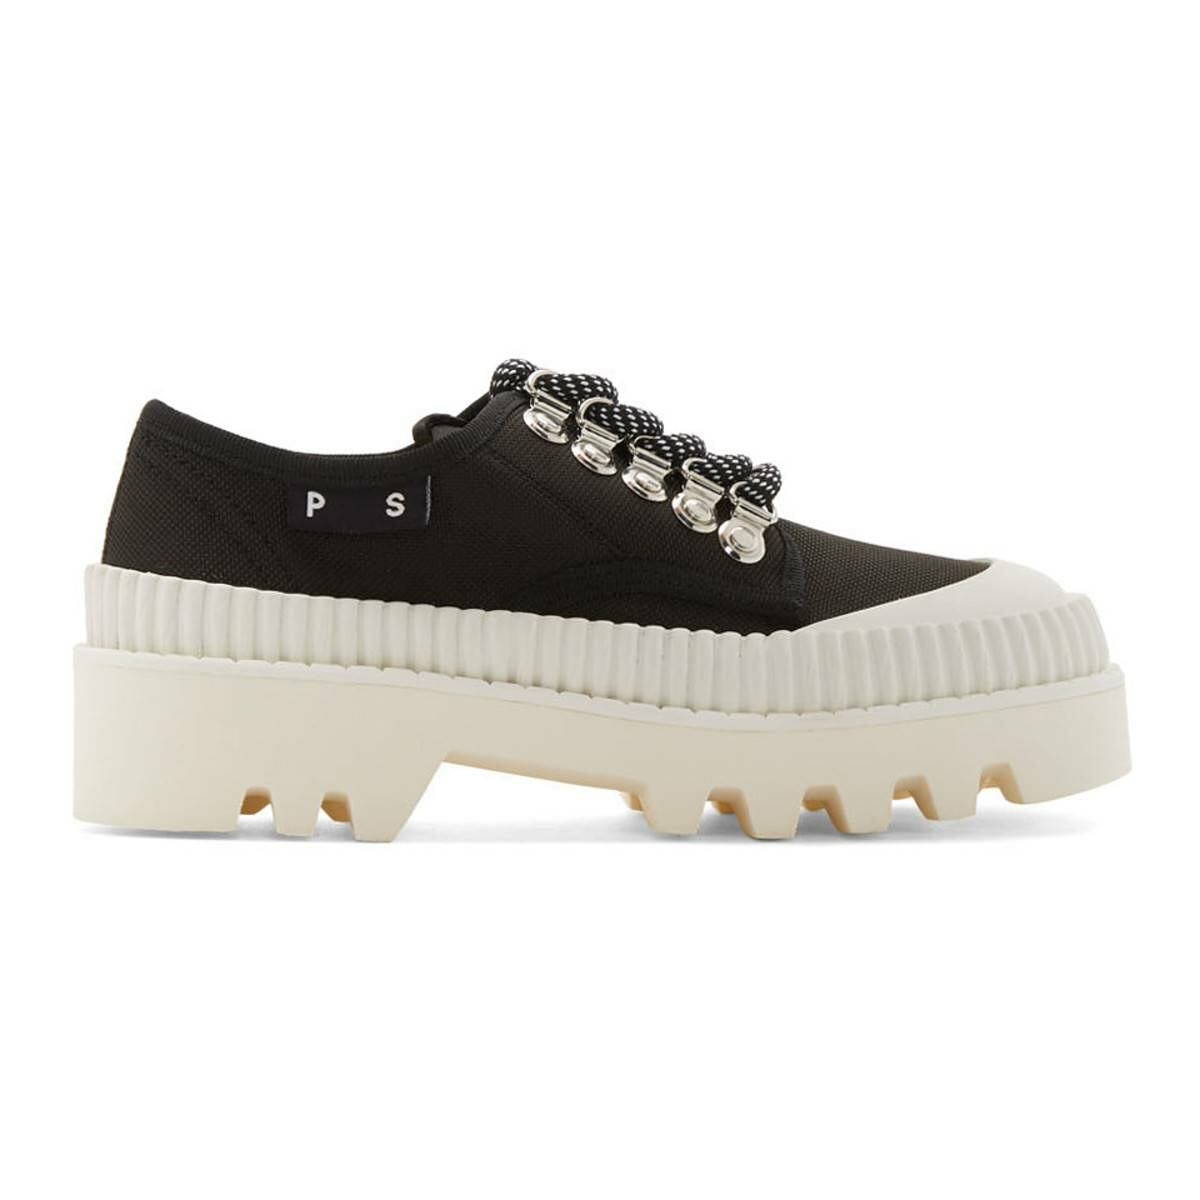 Proenza Schouler Black and White Lug Sole Derbys Ssense USA WOMEN Women SHOES Womens LEATHER SHOES